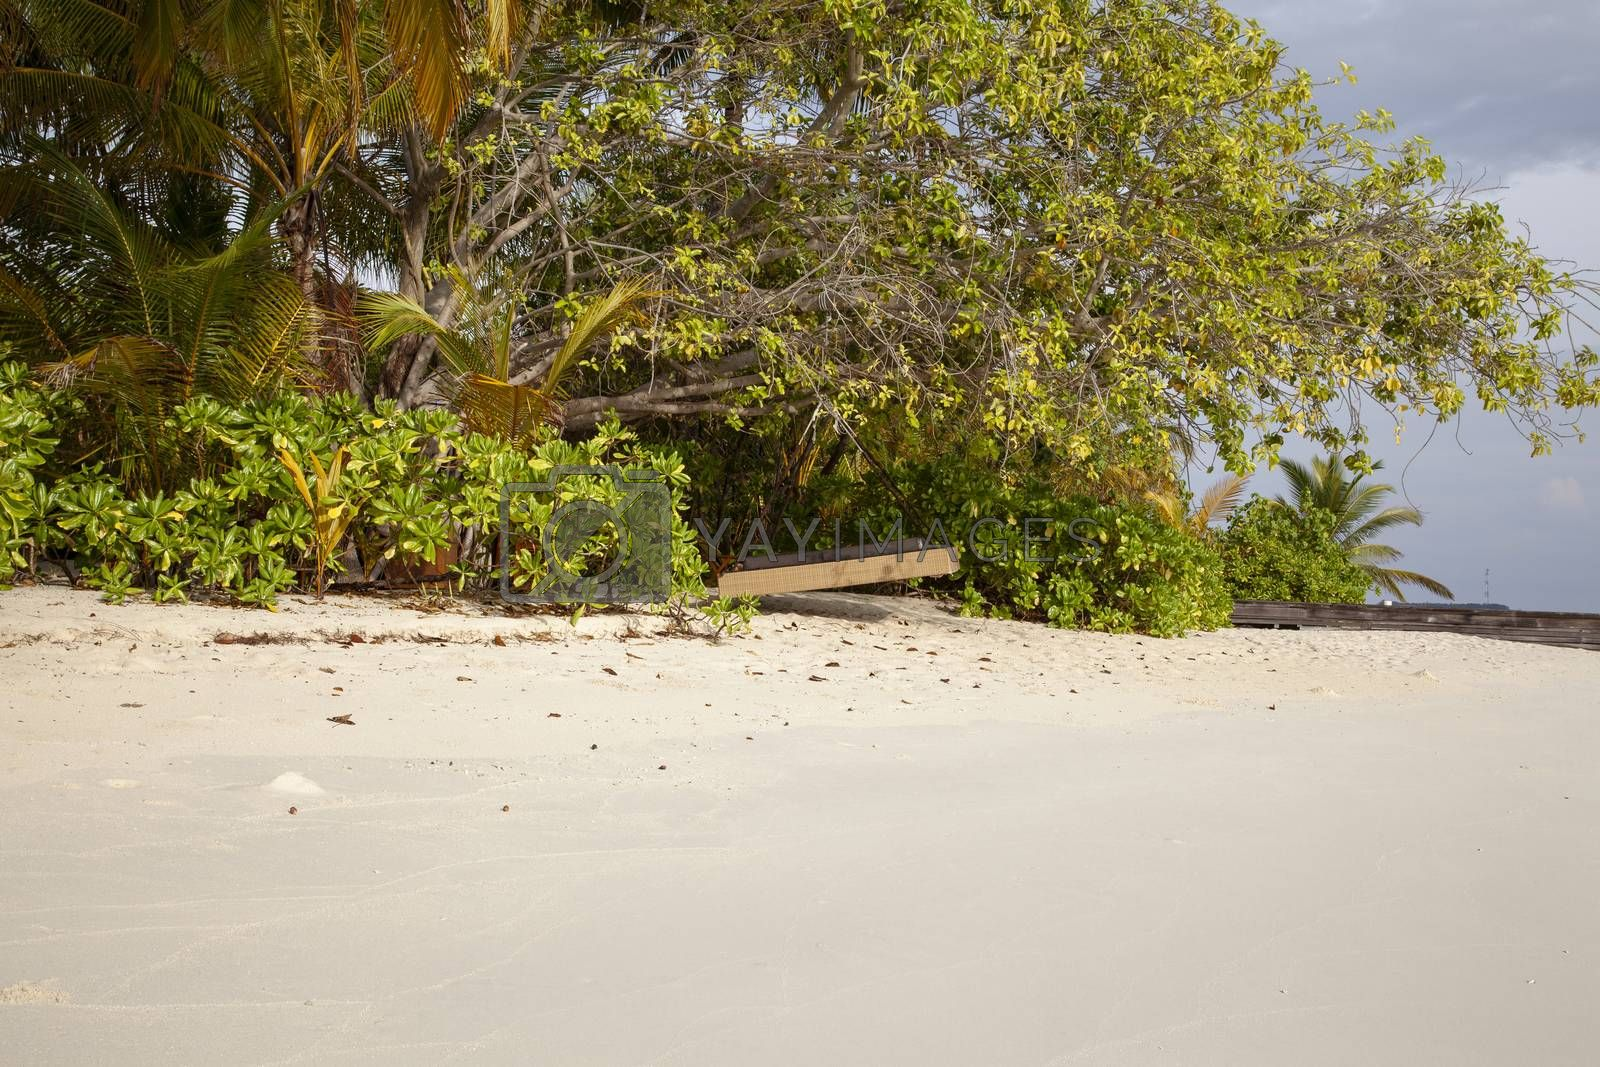 hanging bed on the beach in the Maldives by maselkoo99